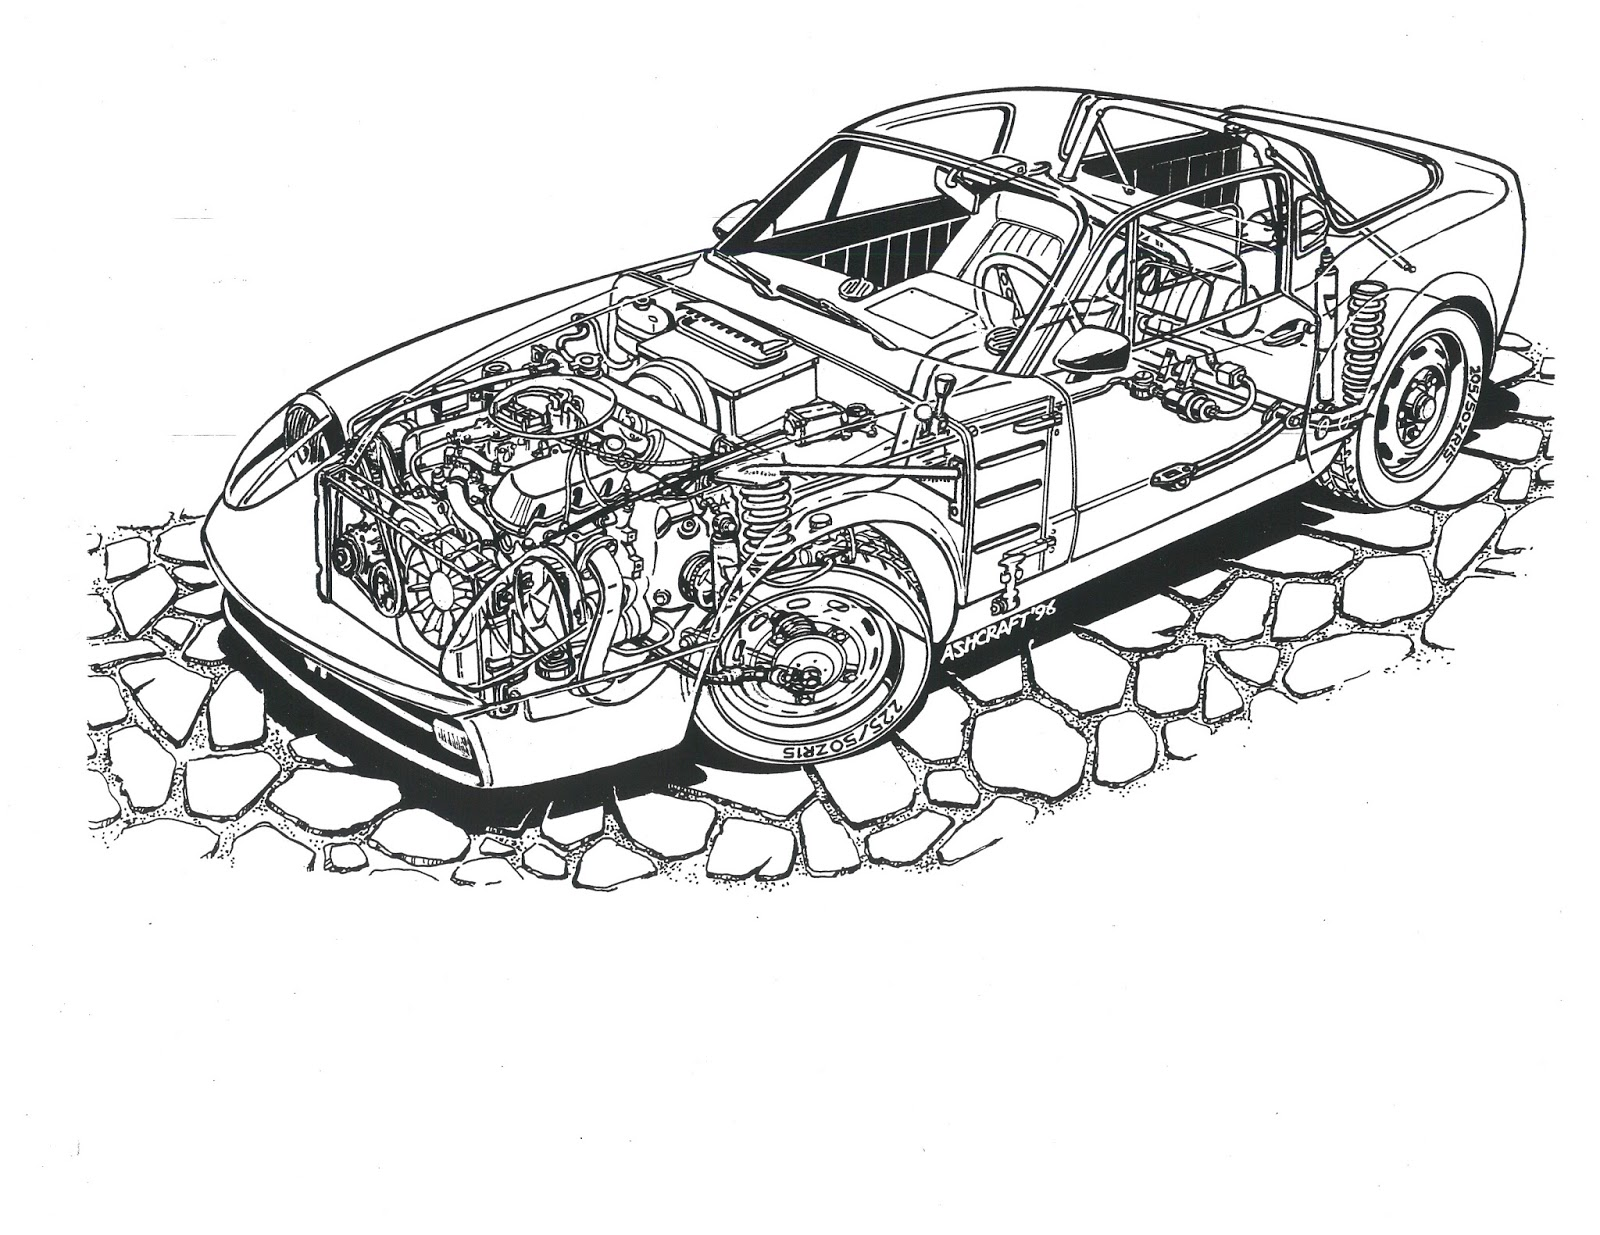 SAAB JOURNAL: JACK ASHCRAFT'S ARTWORK--PHANTOM DRAWINGS